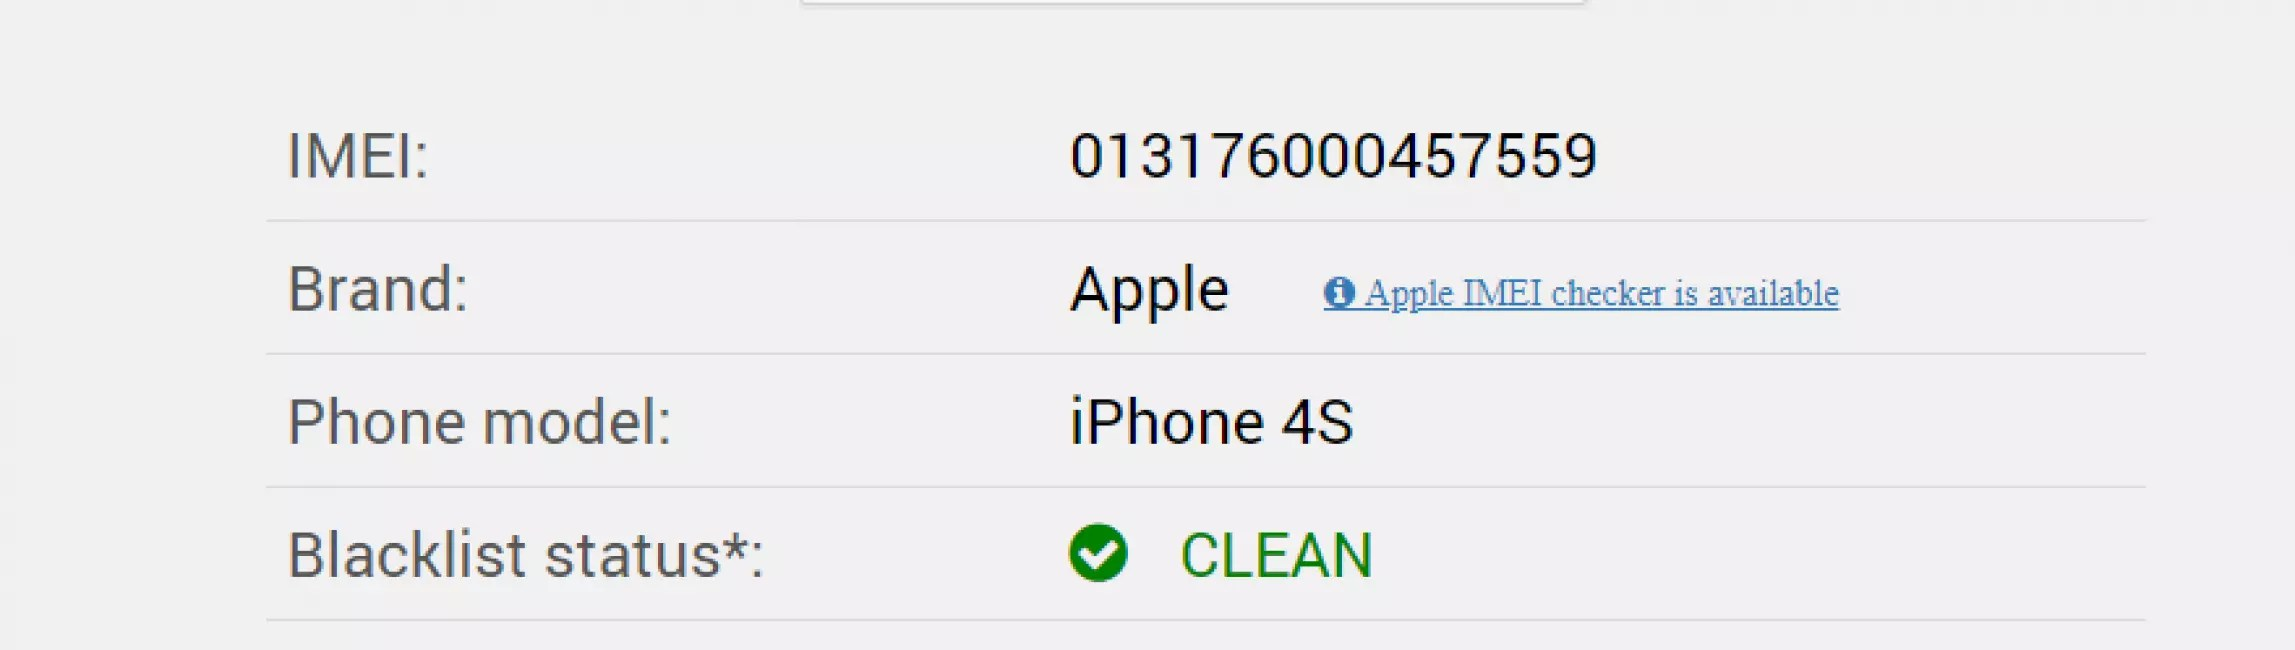 5 simple ways how to check iPhone